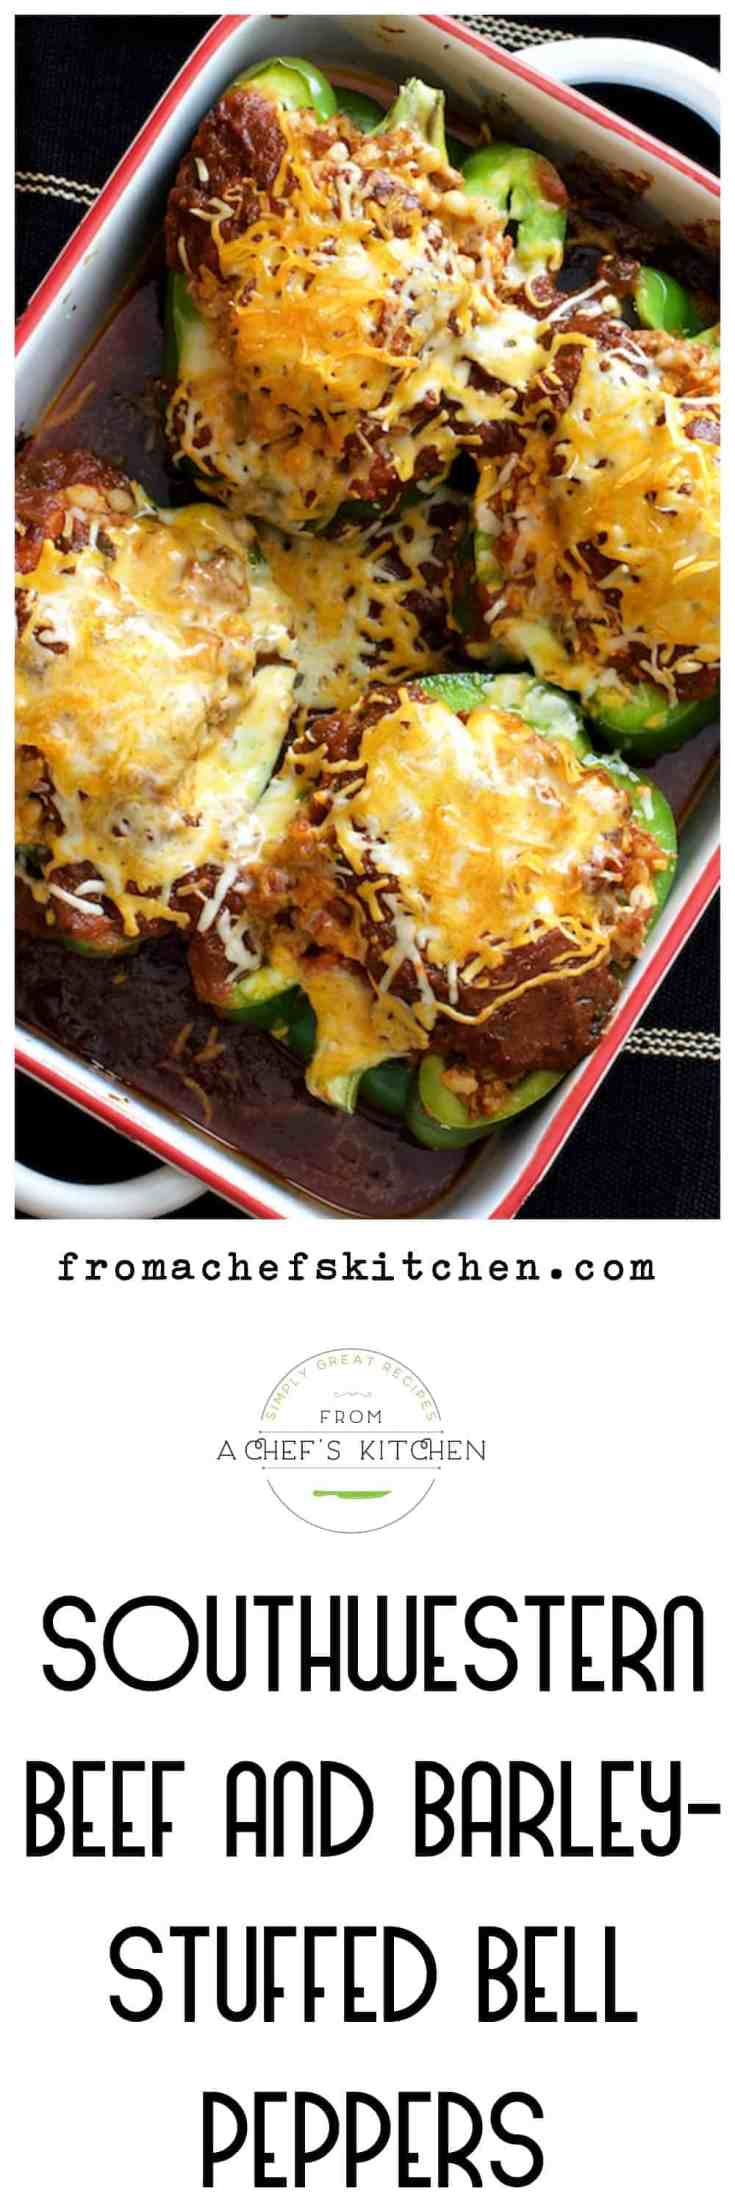 Southwestern Beef and Barley Stuffed Bell Peppers are a spicy twist on traditional stuffed bell peppers you and your family will love! #stuffedpeppers #beefstuffedpeppers #southwestern #southwesternfood